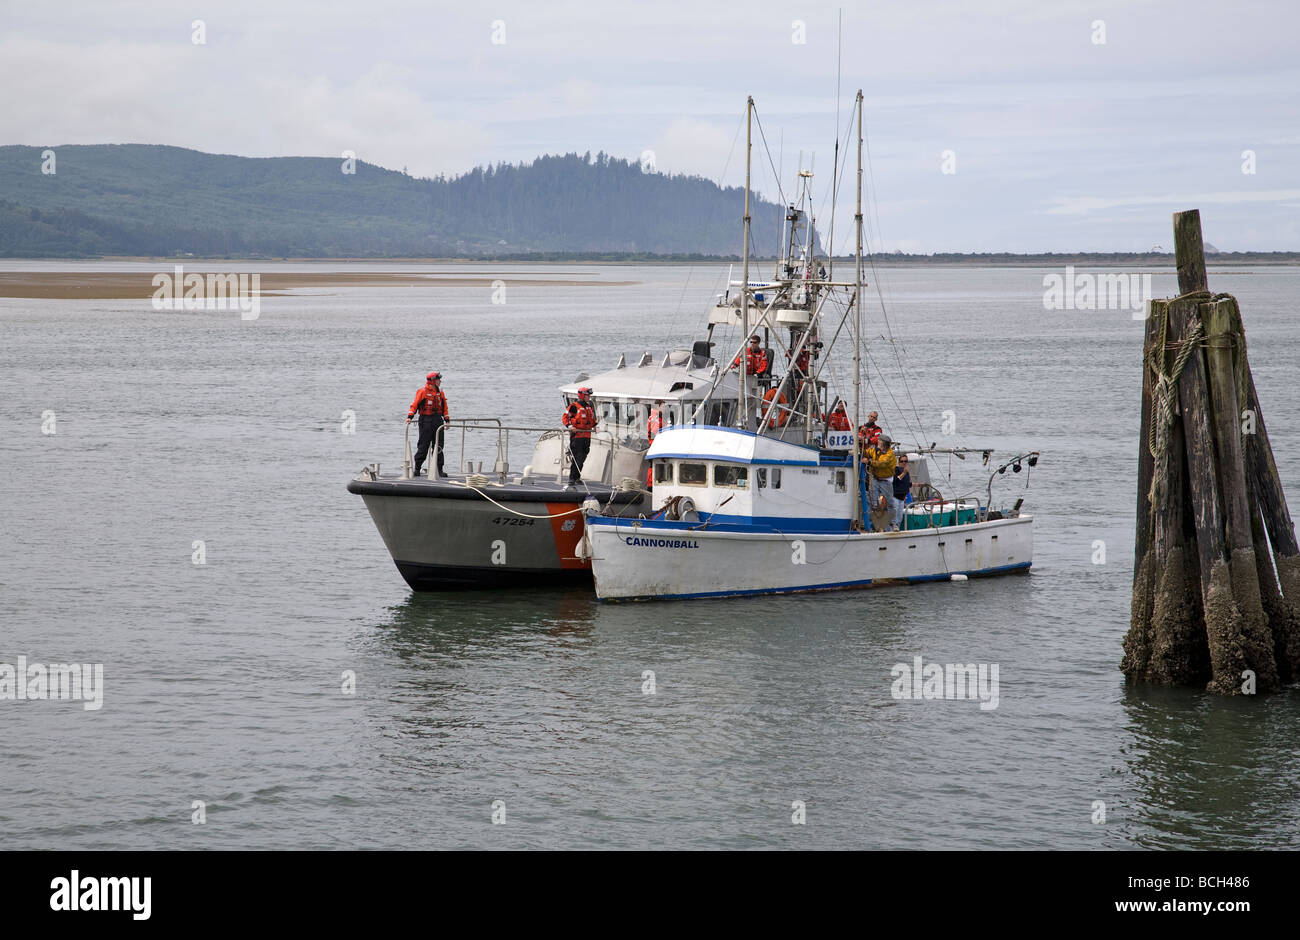 A US coast guard cutter rescues a stranded fishing boat in Tillamook Bay near the town of Garibaldi on the Oregon - Stock Image